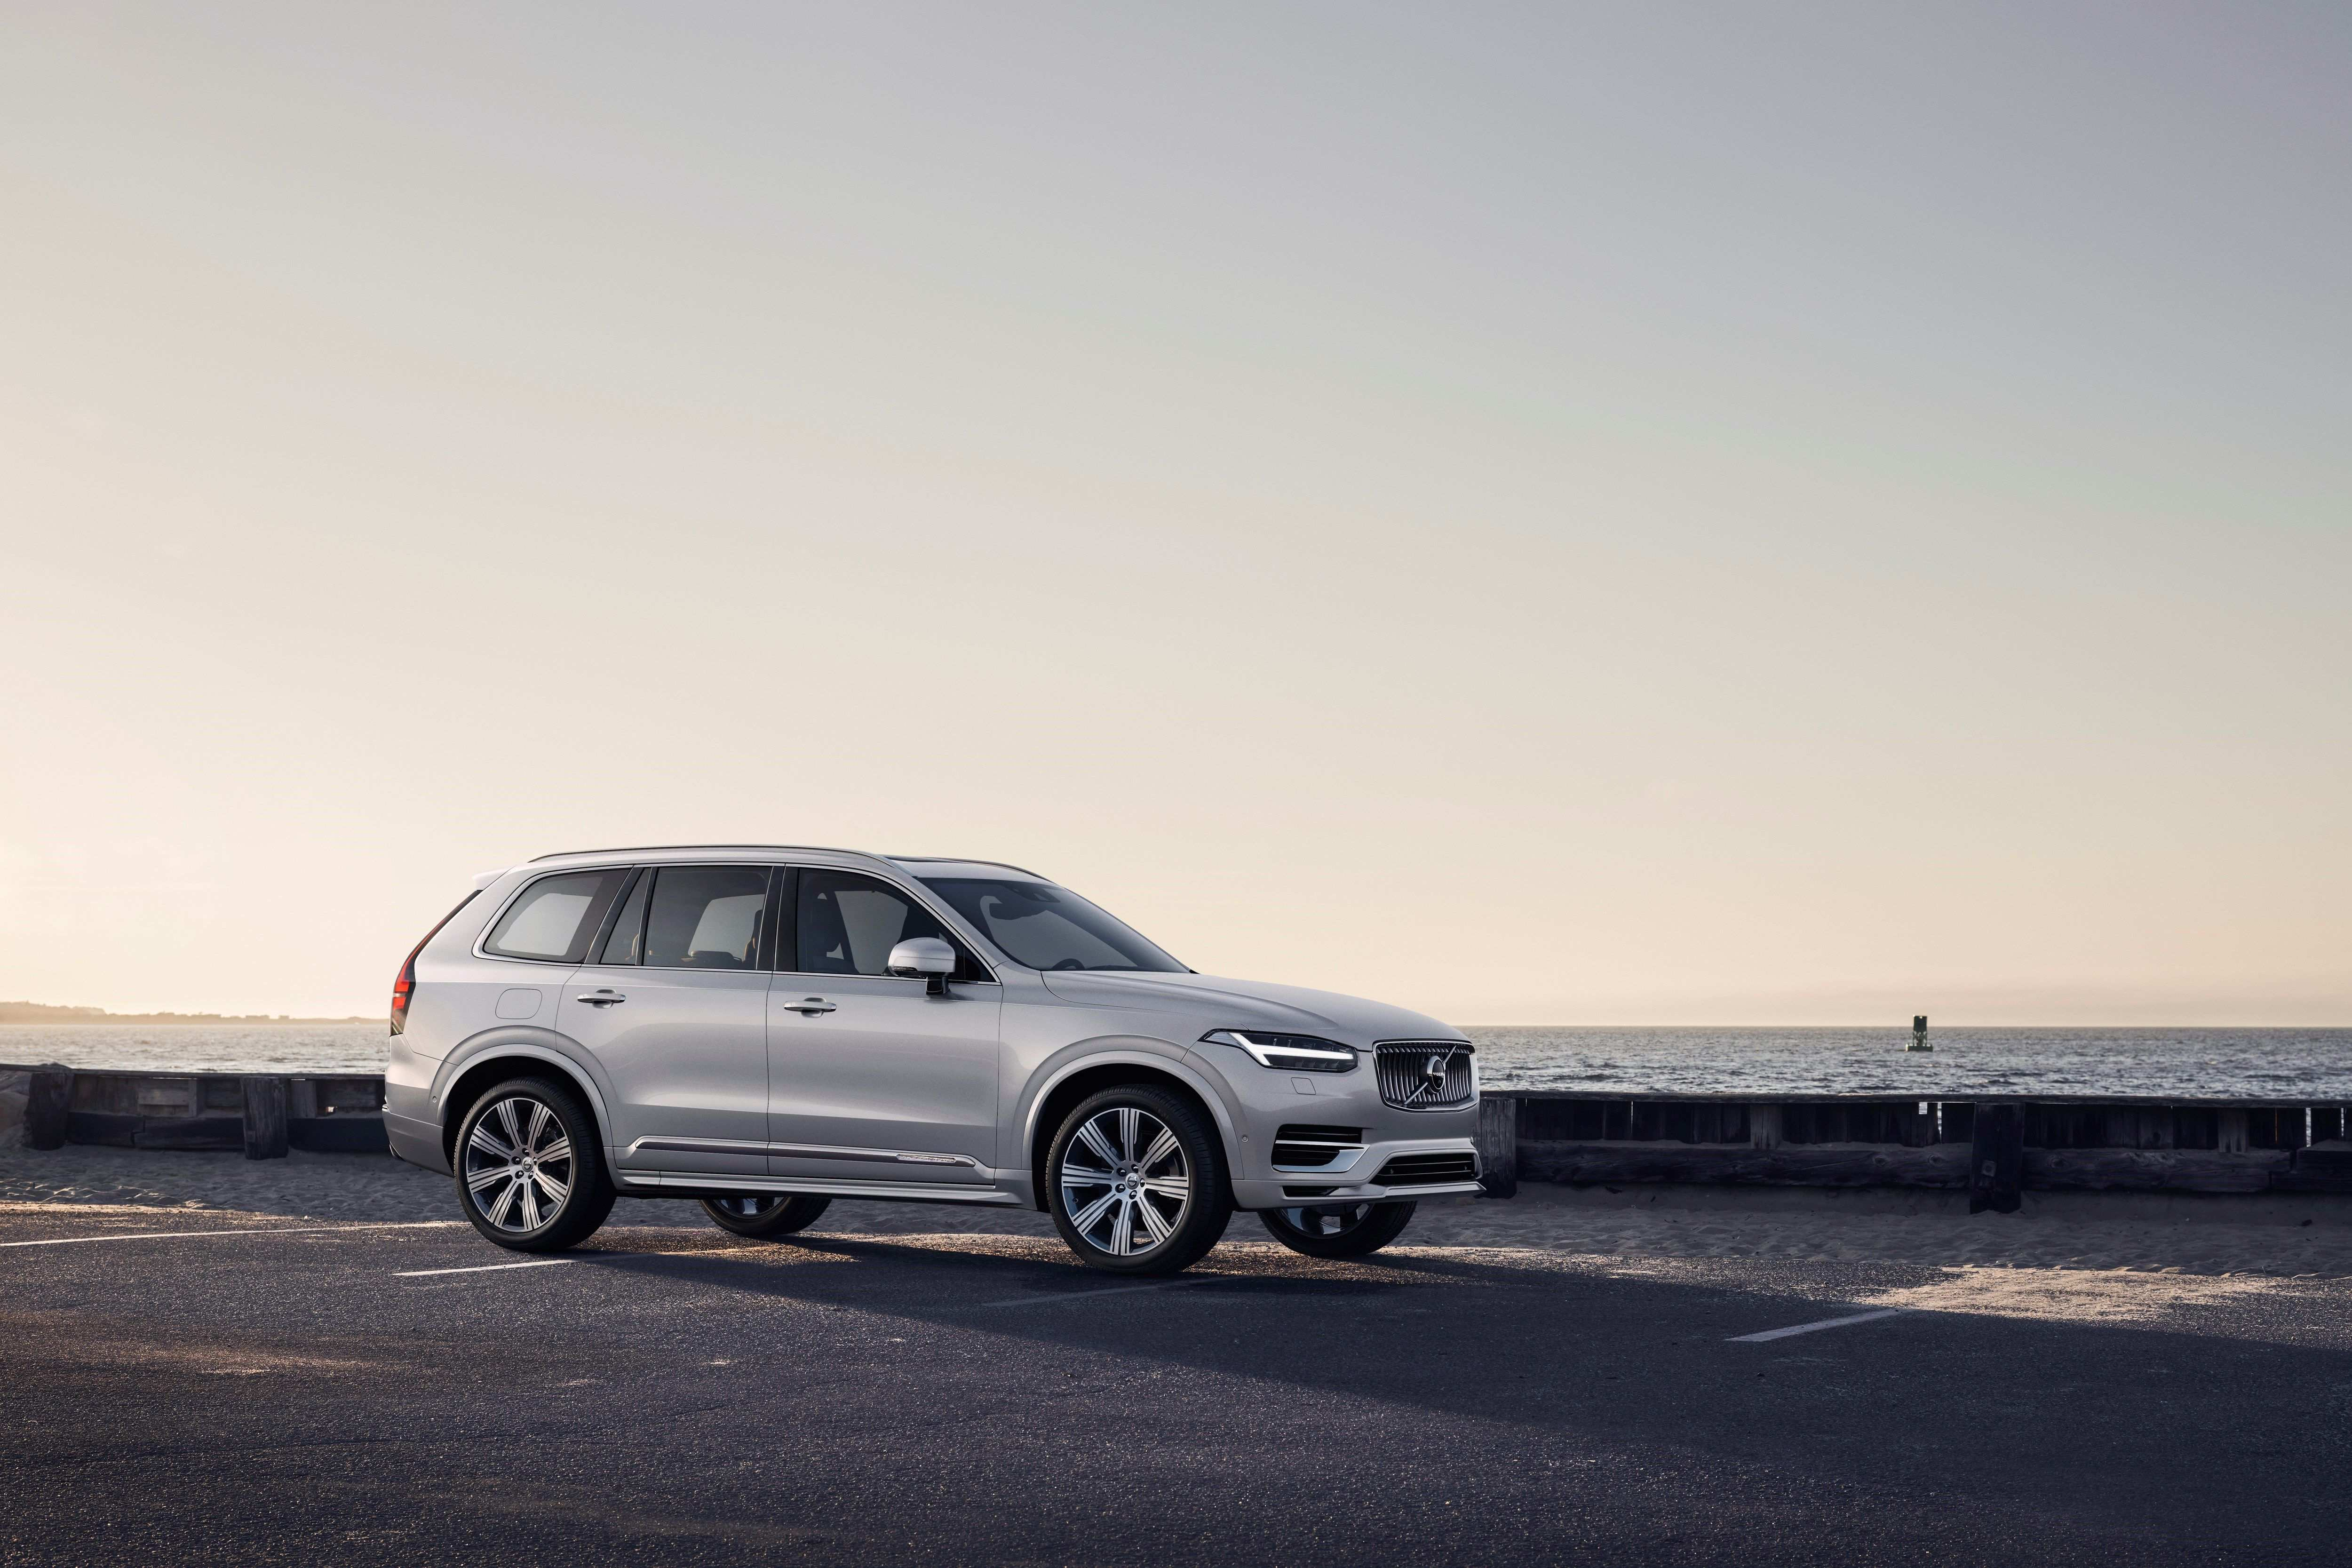 48 The 2020 Volvo XC90 Ratings